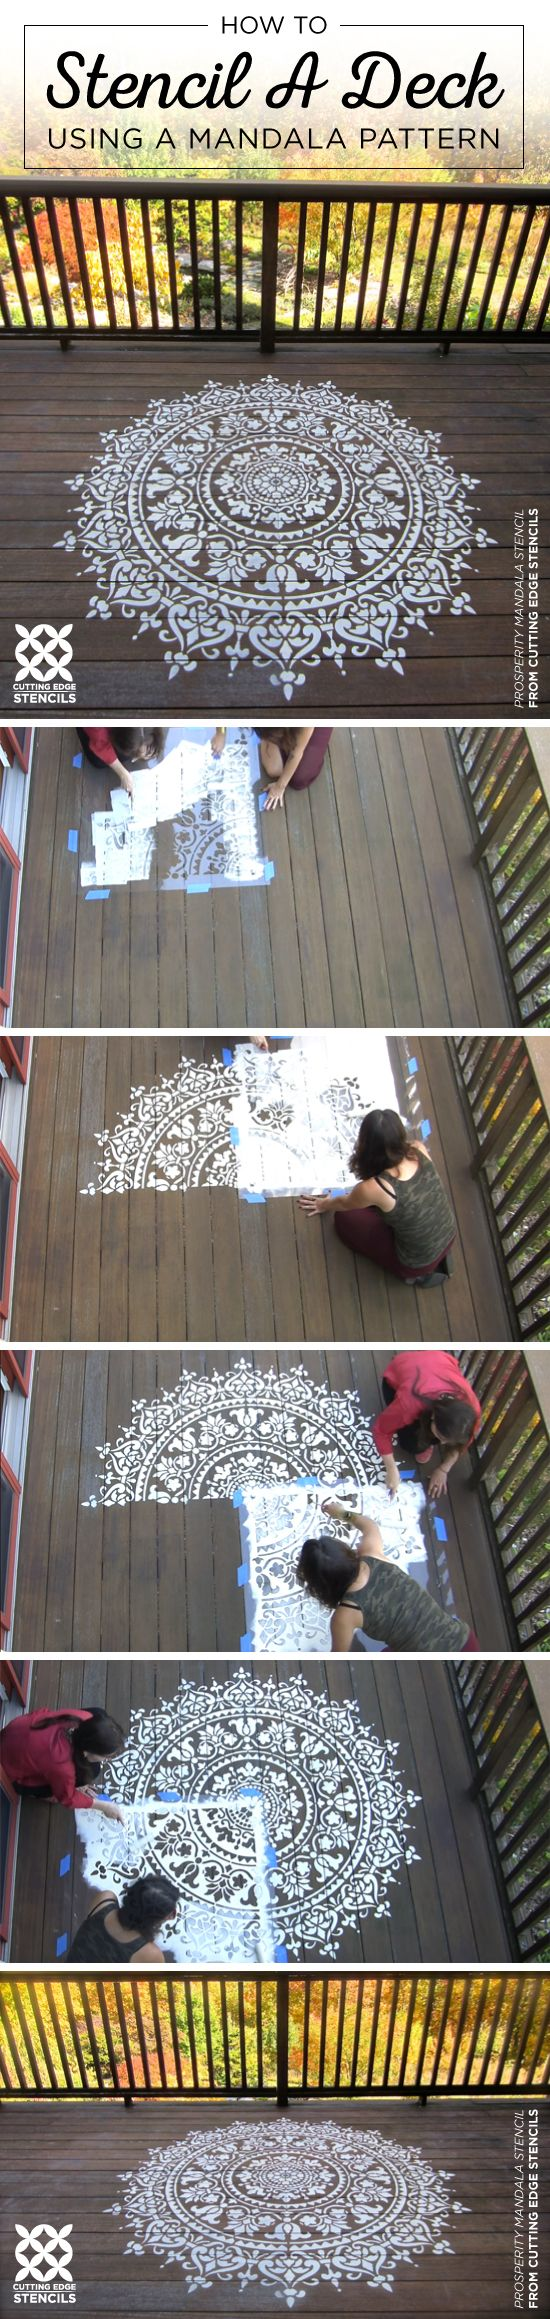 Learn how to stencil wooden wall art using the prosperity mandala cutting edge stencils shares how to stencil a deck using a large prosperity mandala stencil pattern amipublicfo Images